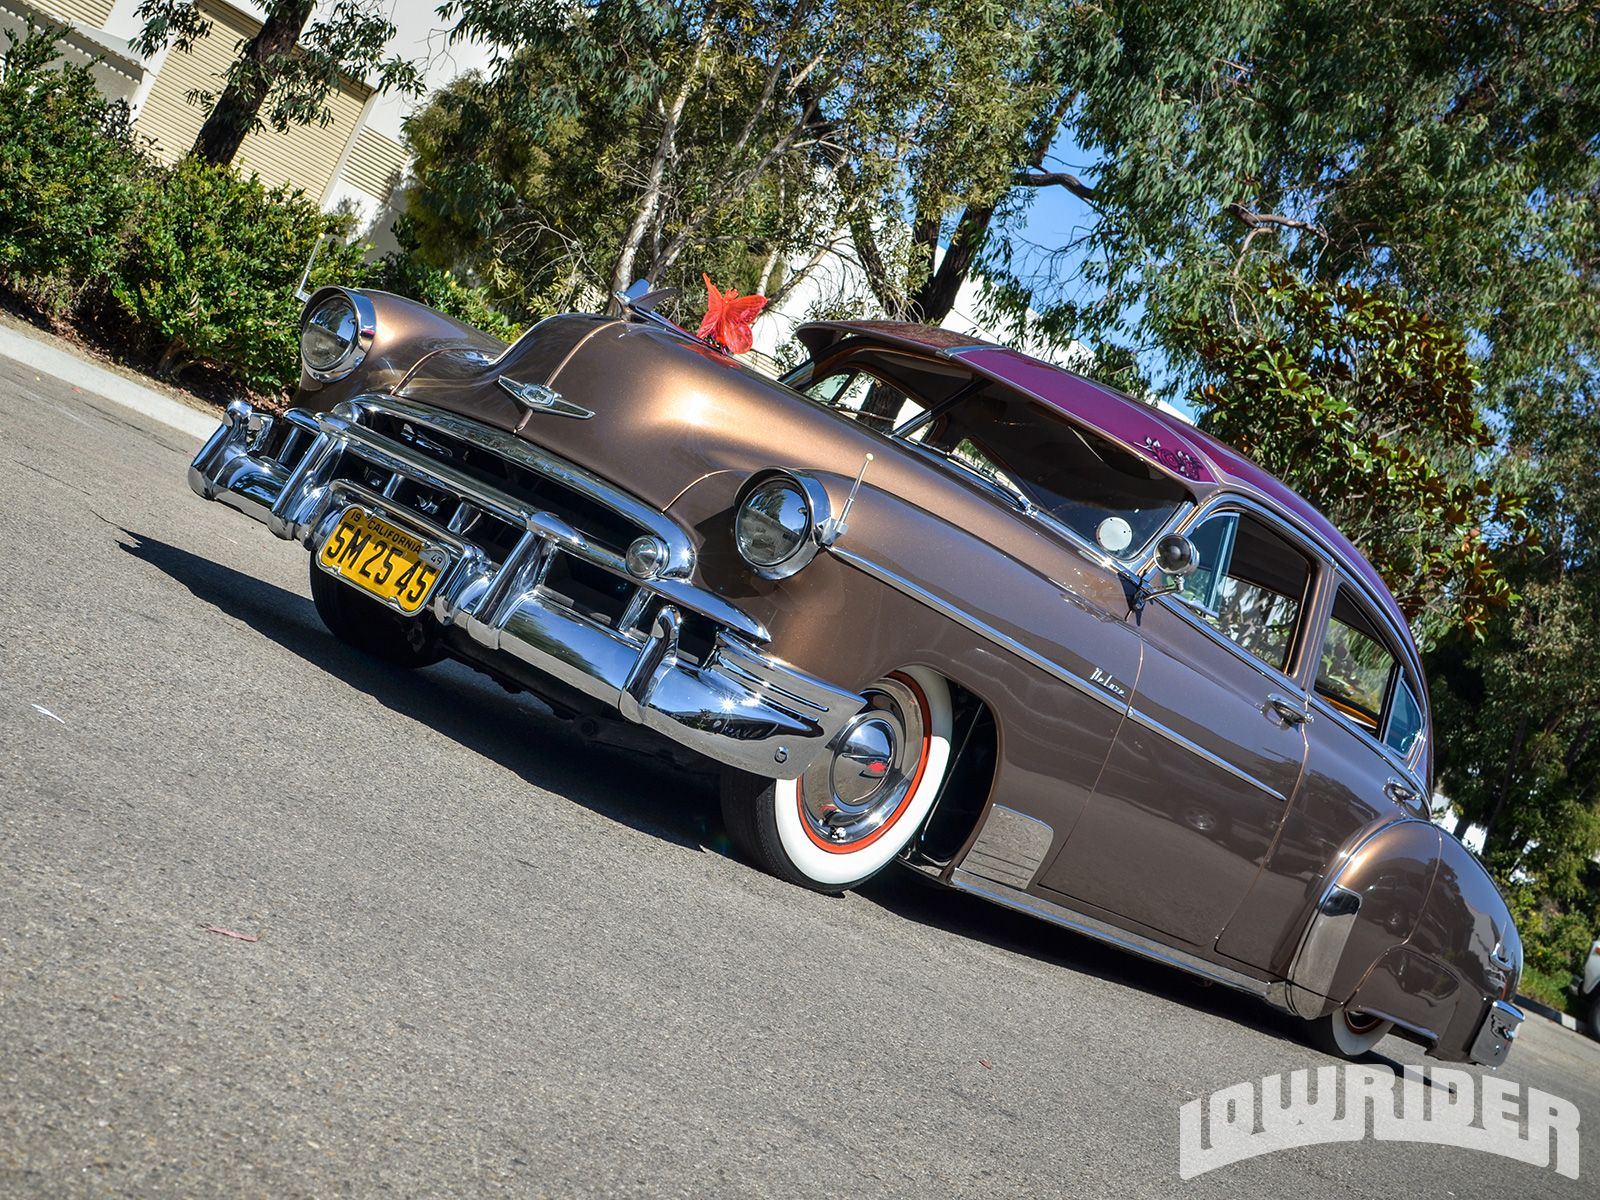 1949 Chevy Bomb Bad Rides Pinterest Cars And Styleline Deluxe Low Rider Antique Vintage Chevrolet